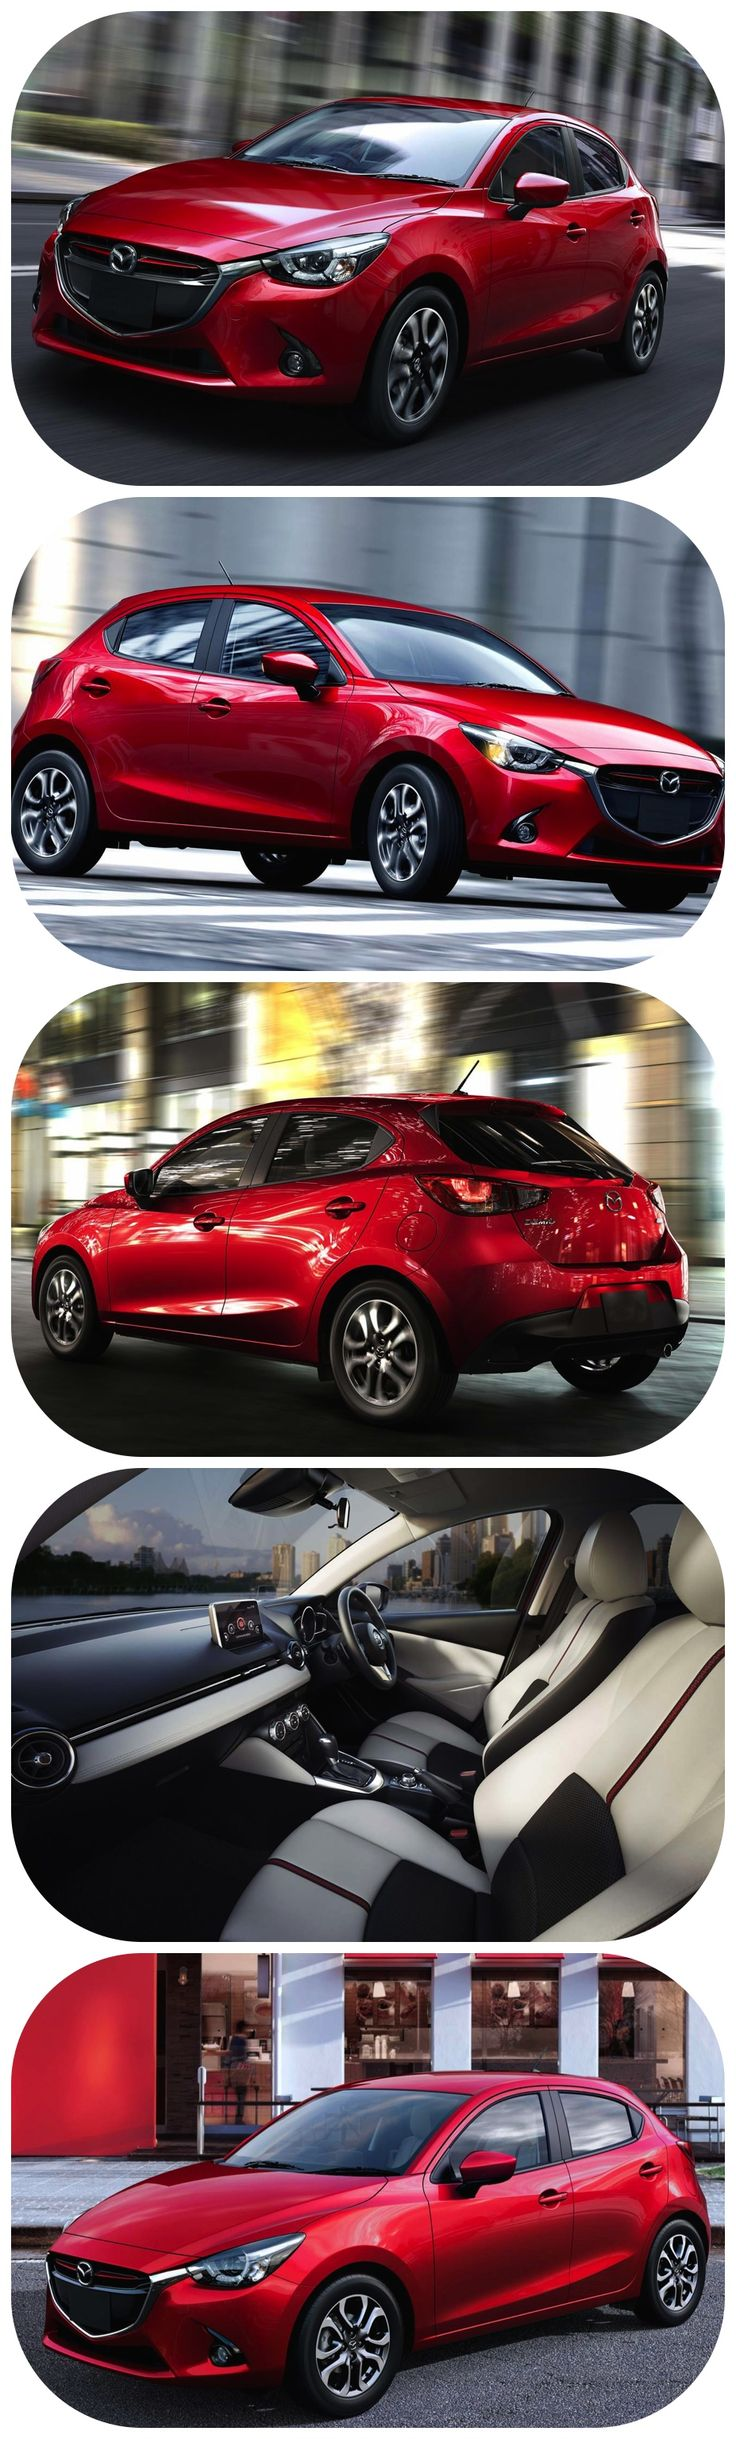 All-New Mazda2  - Mazda Demio SKYACTIV  The first pictures from Mazda of the all-new Mazda2. The unconventional carmaker launched its production of its next-generation supermini at its Hofu plant south-east of Hiroshima.   The Mazda2 aka as Demio in some regions is the fourth member of Mazda's current model generation. Featuring the full range of ultra-efficient SKYACTIV Tech along with a sharp stunning KODO – Soul of Motion design. #mazda #supermini #newcars #drive